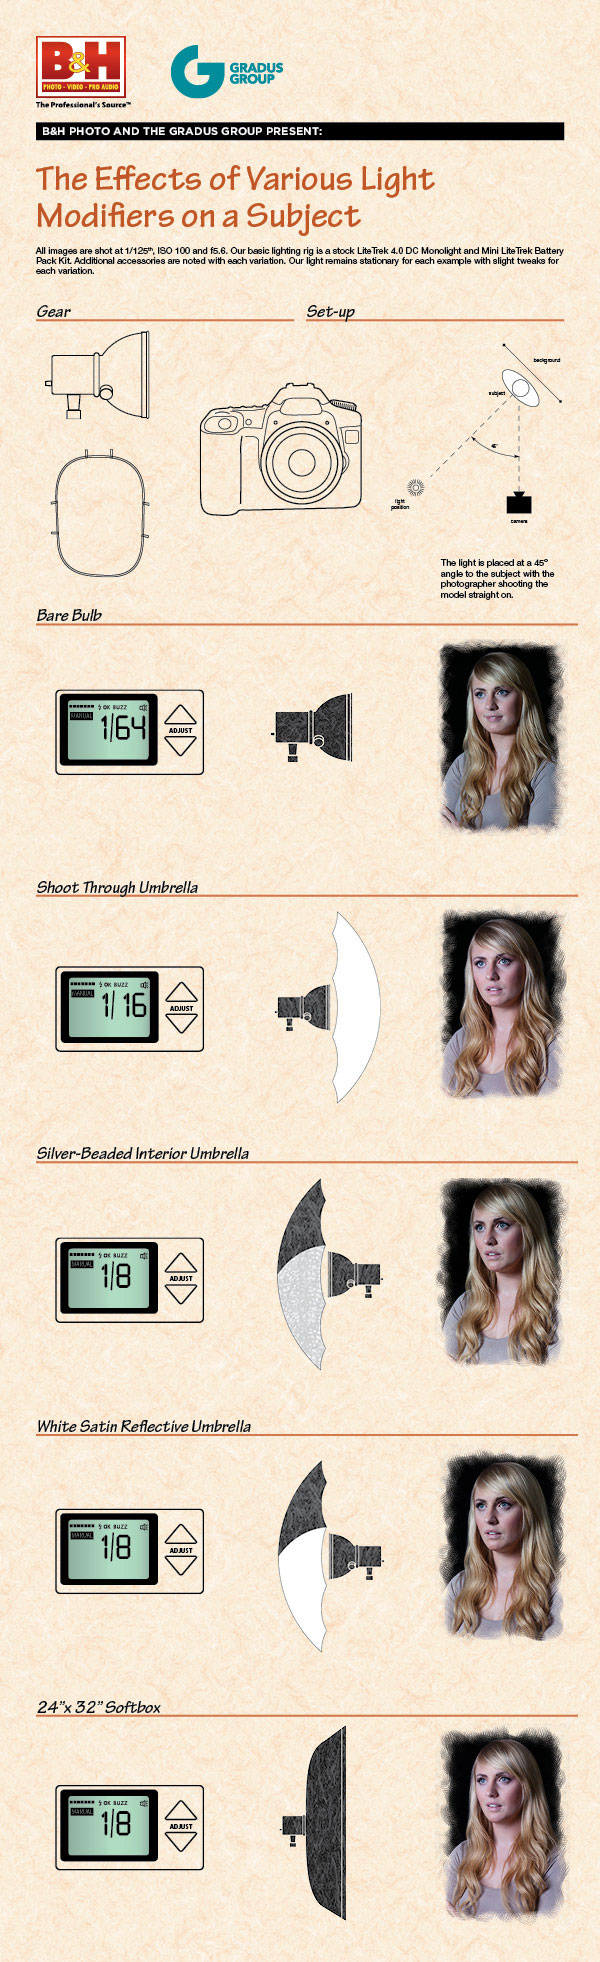 B&H's nifty lighting modifiers infographic.